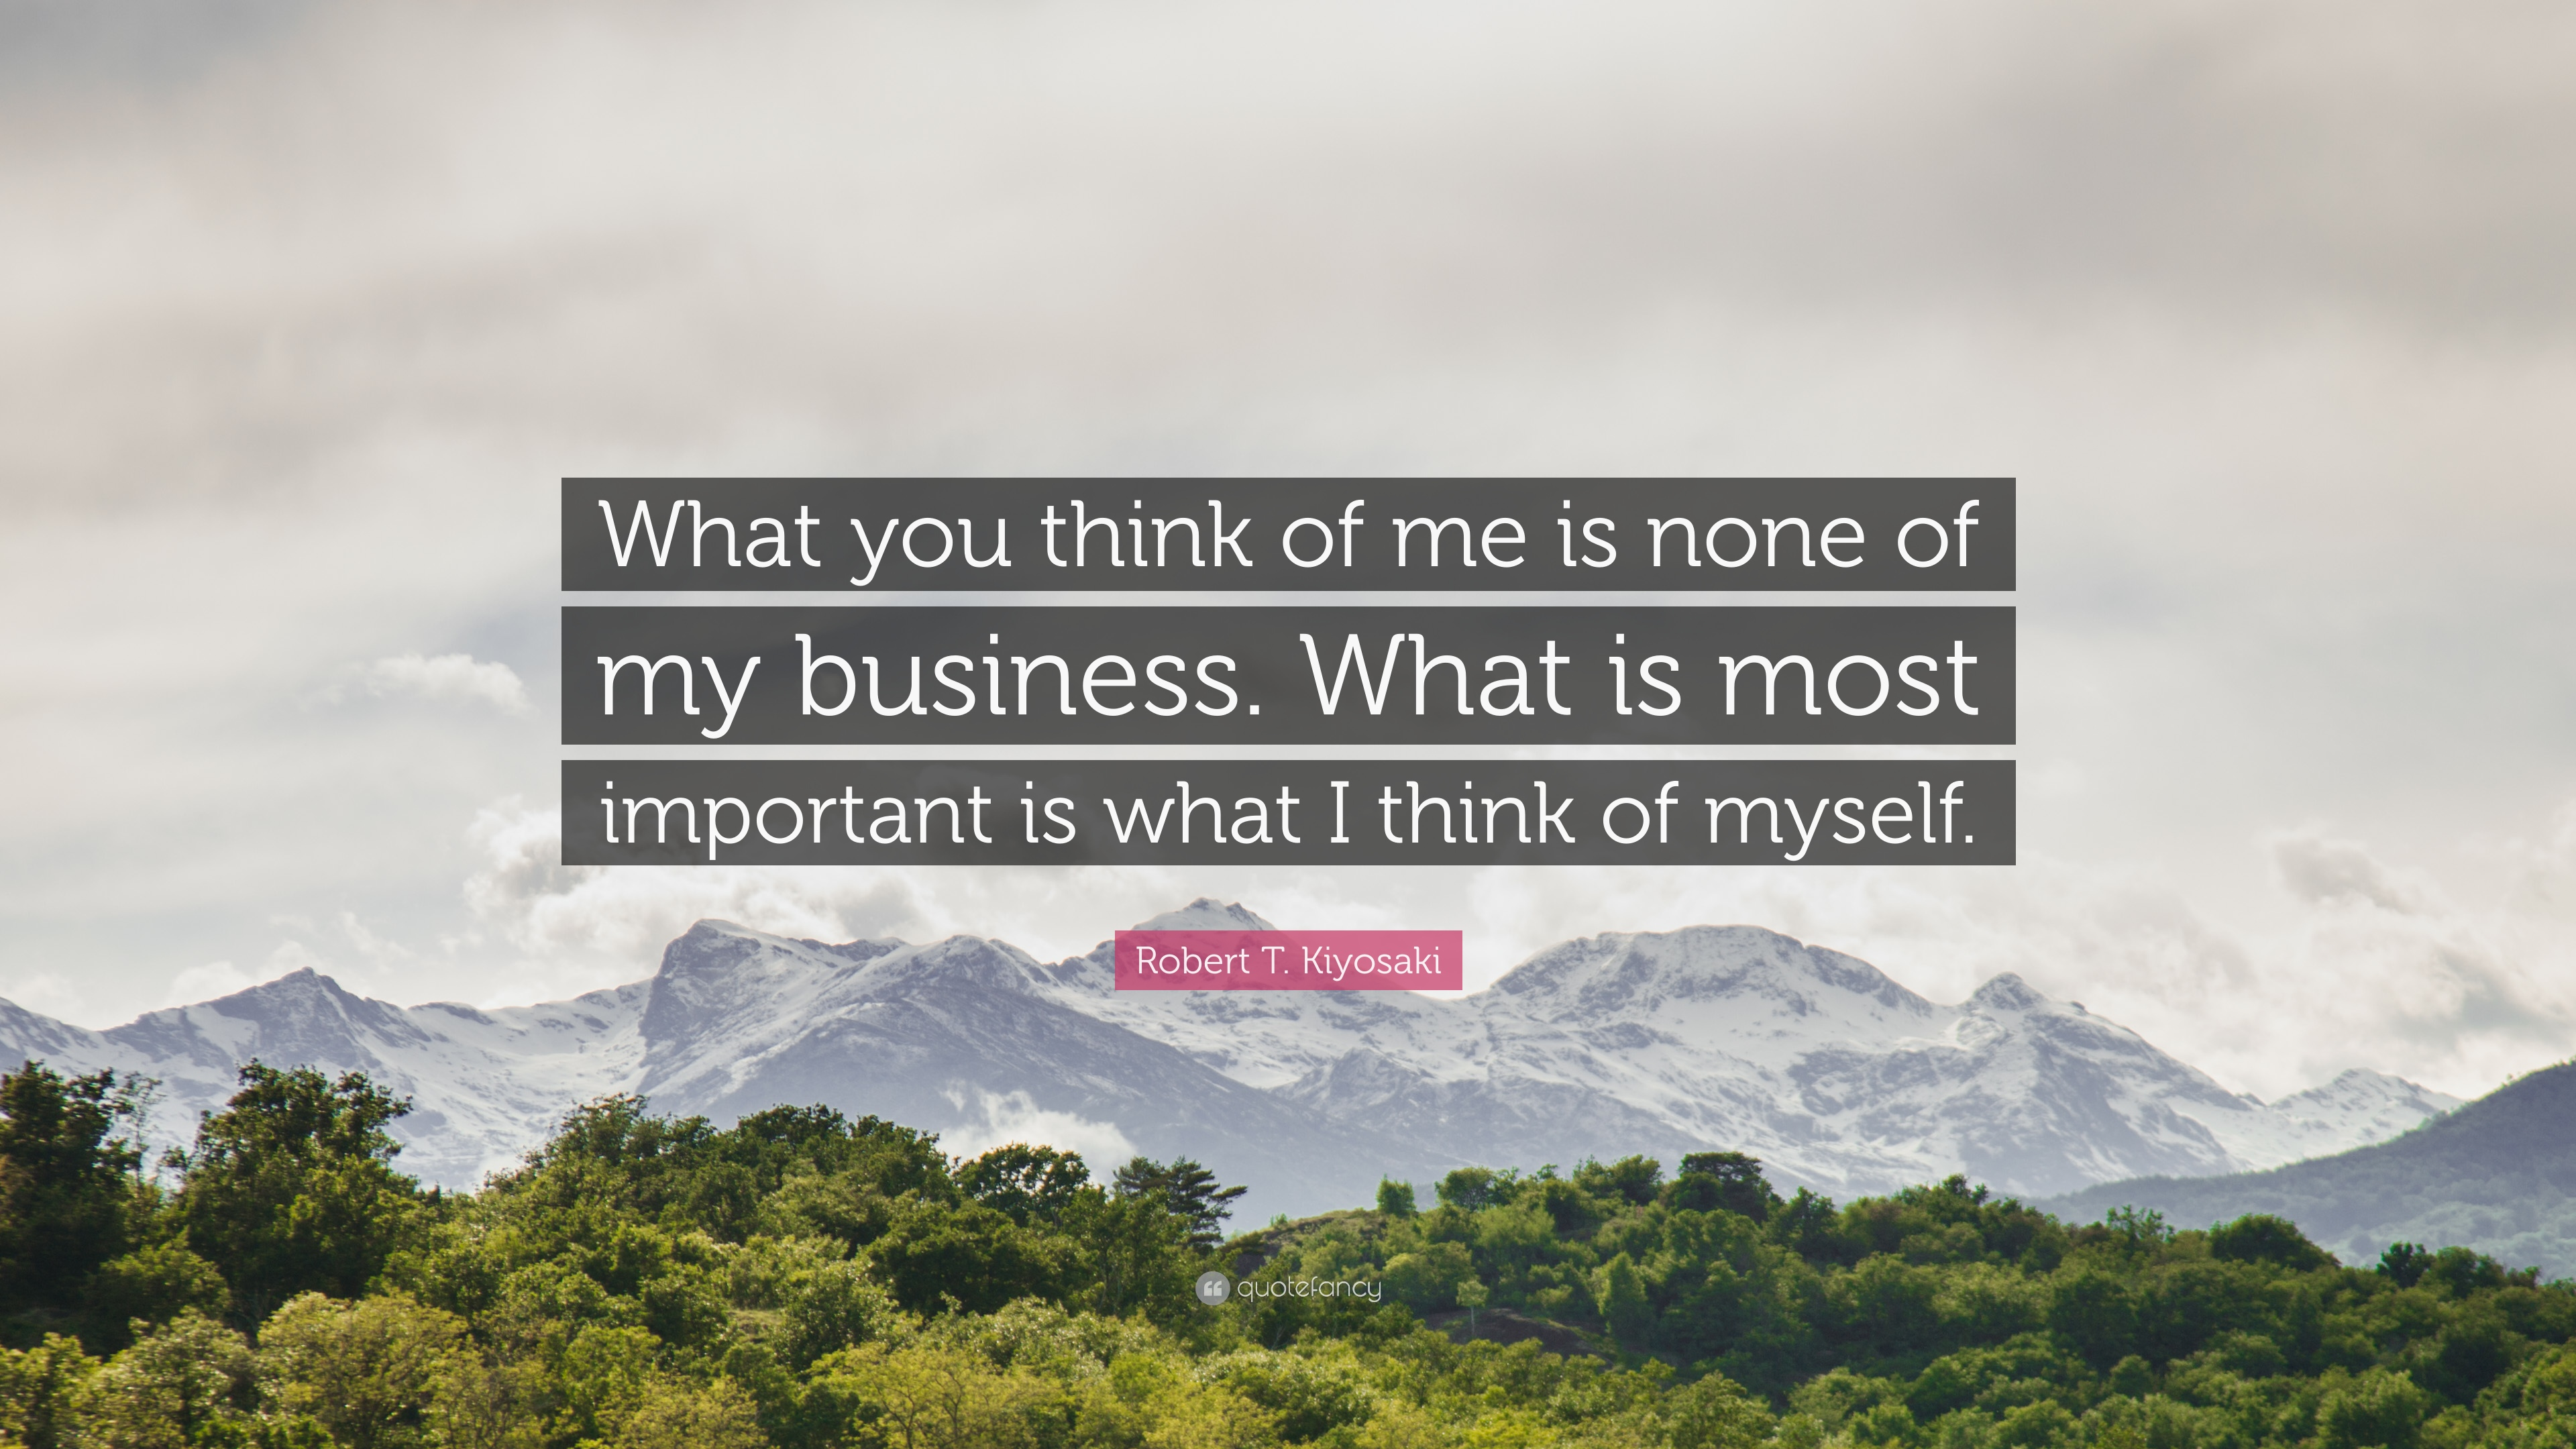 Robert T Kiyosaki Quote What You Think Of Me Is None Of My